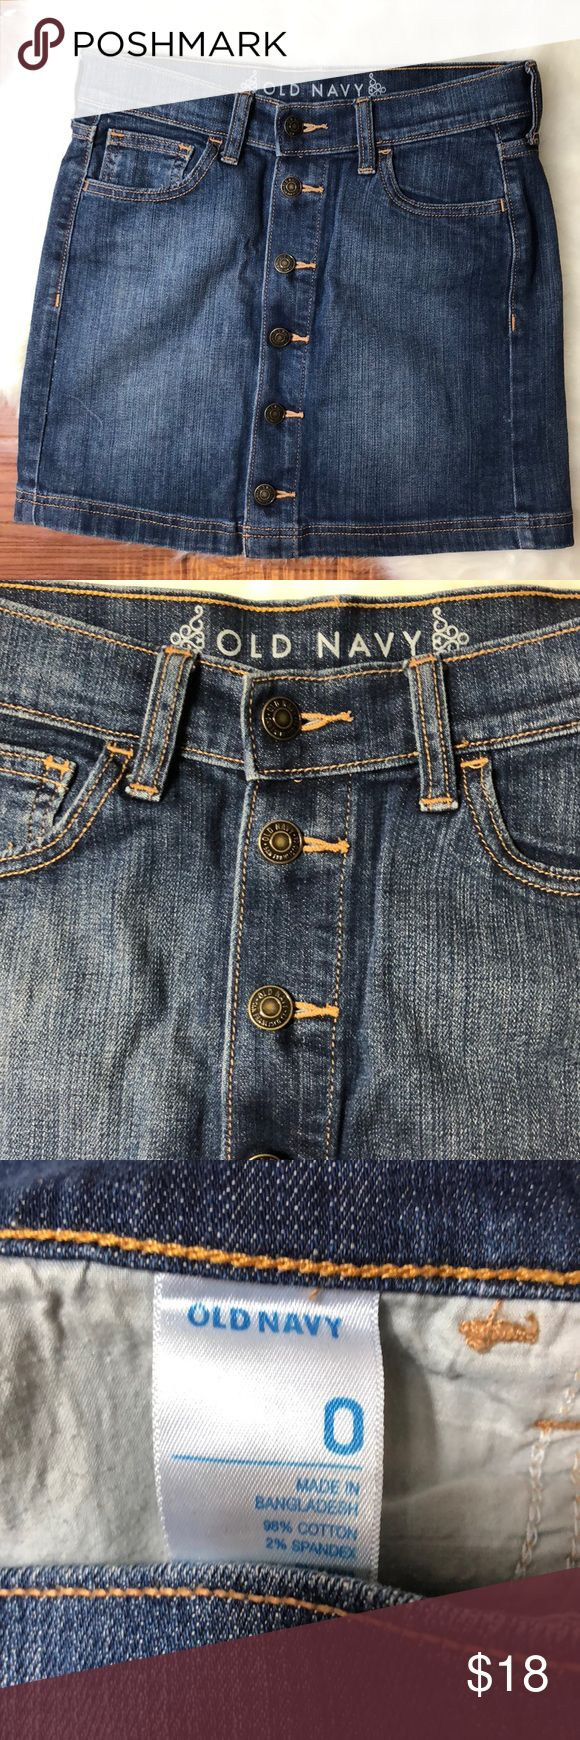 """OLD NAVY Dark Wash Button Down Denim Jeans Skirt Excellent used condition. Dark denim jeans mini skirt by Old Navy. Skirt is button down and has 2 side front pockets, 1 mini front pocket and 2 back pockets.  Materials: cotton spandex Waist (across) 14.5""""  Length 16""""  No trades.  We are a smoke and pet-free home. Old Navy Skirts Mini"""